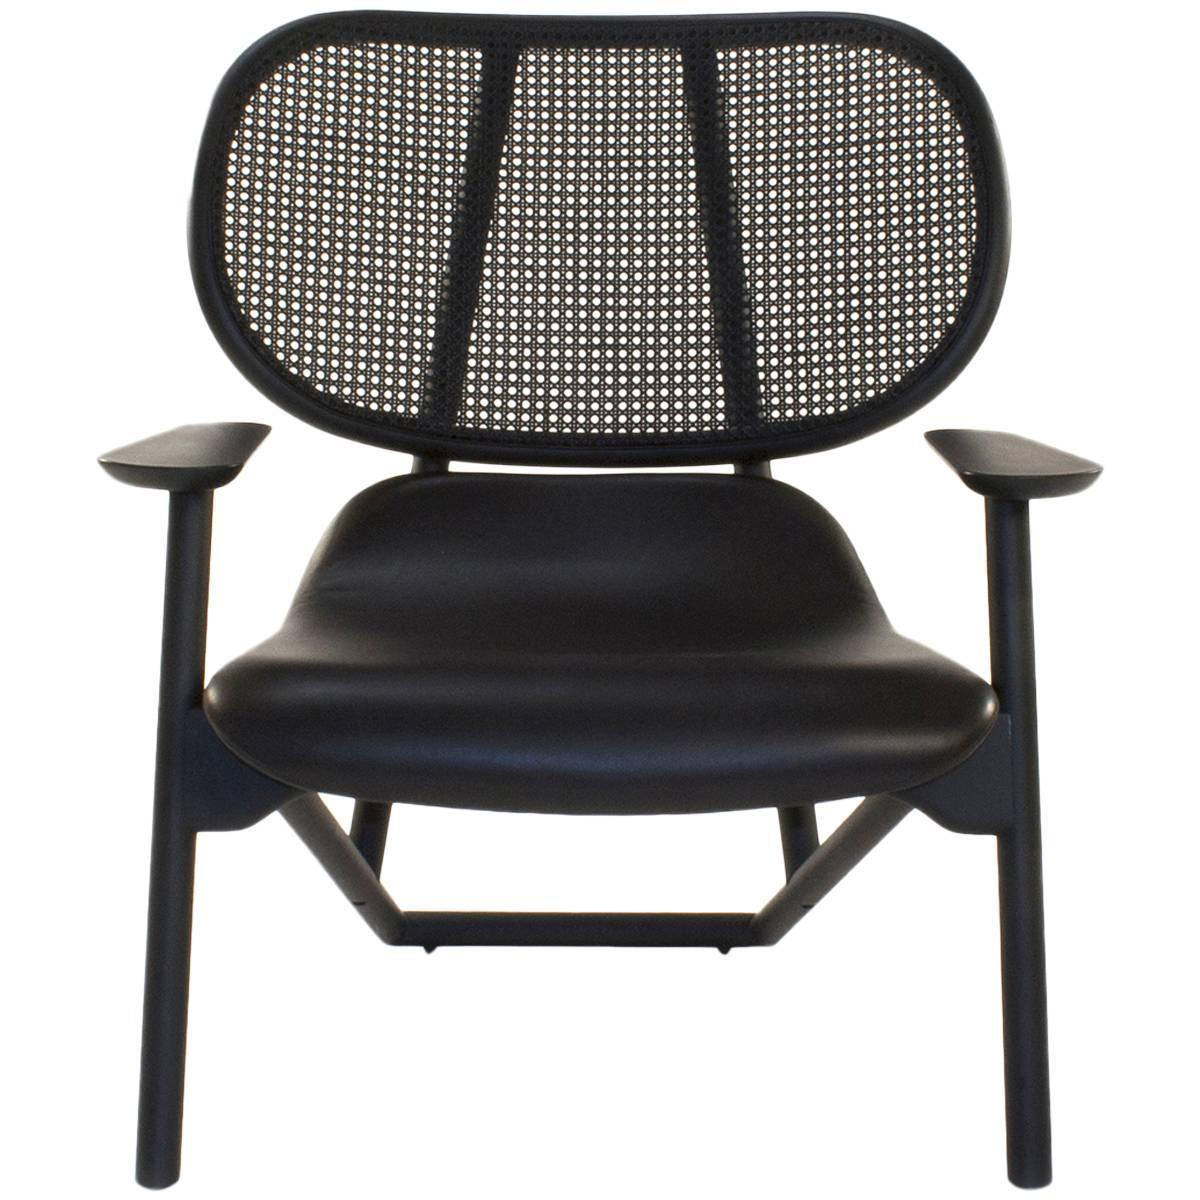 moroso black klara lounge armchair by patricia urquiola italy for sale at 1stdibs. Black Bedroom Furniture Sets. Home Design Ideas